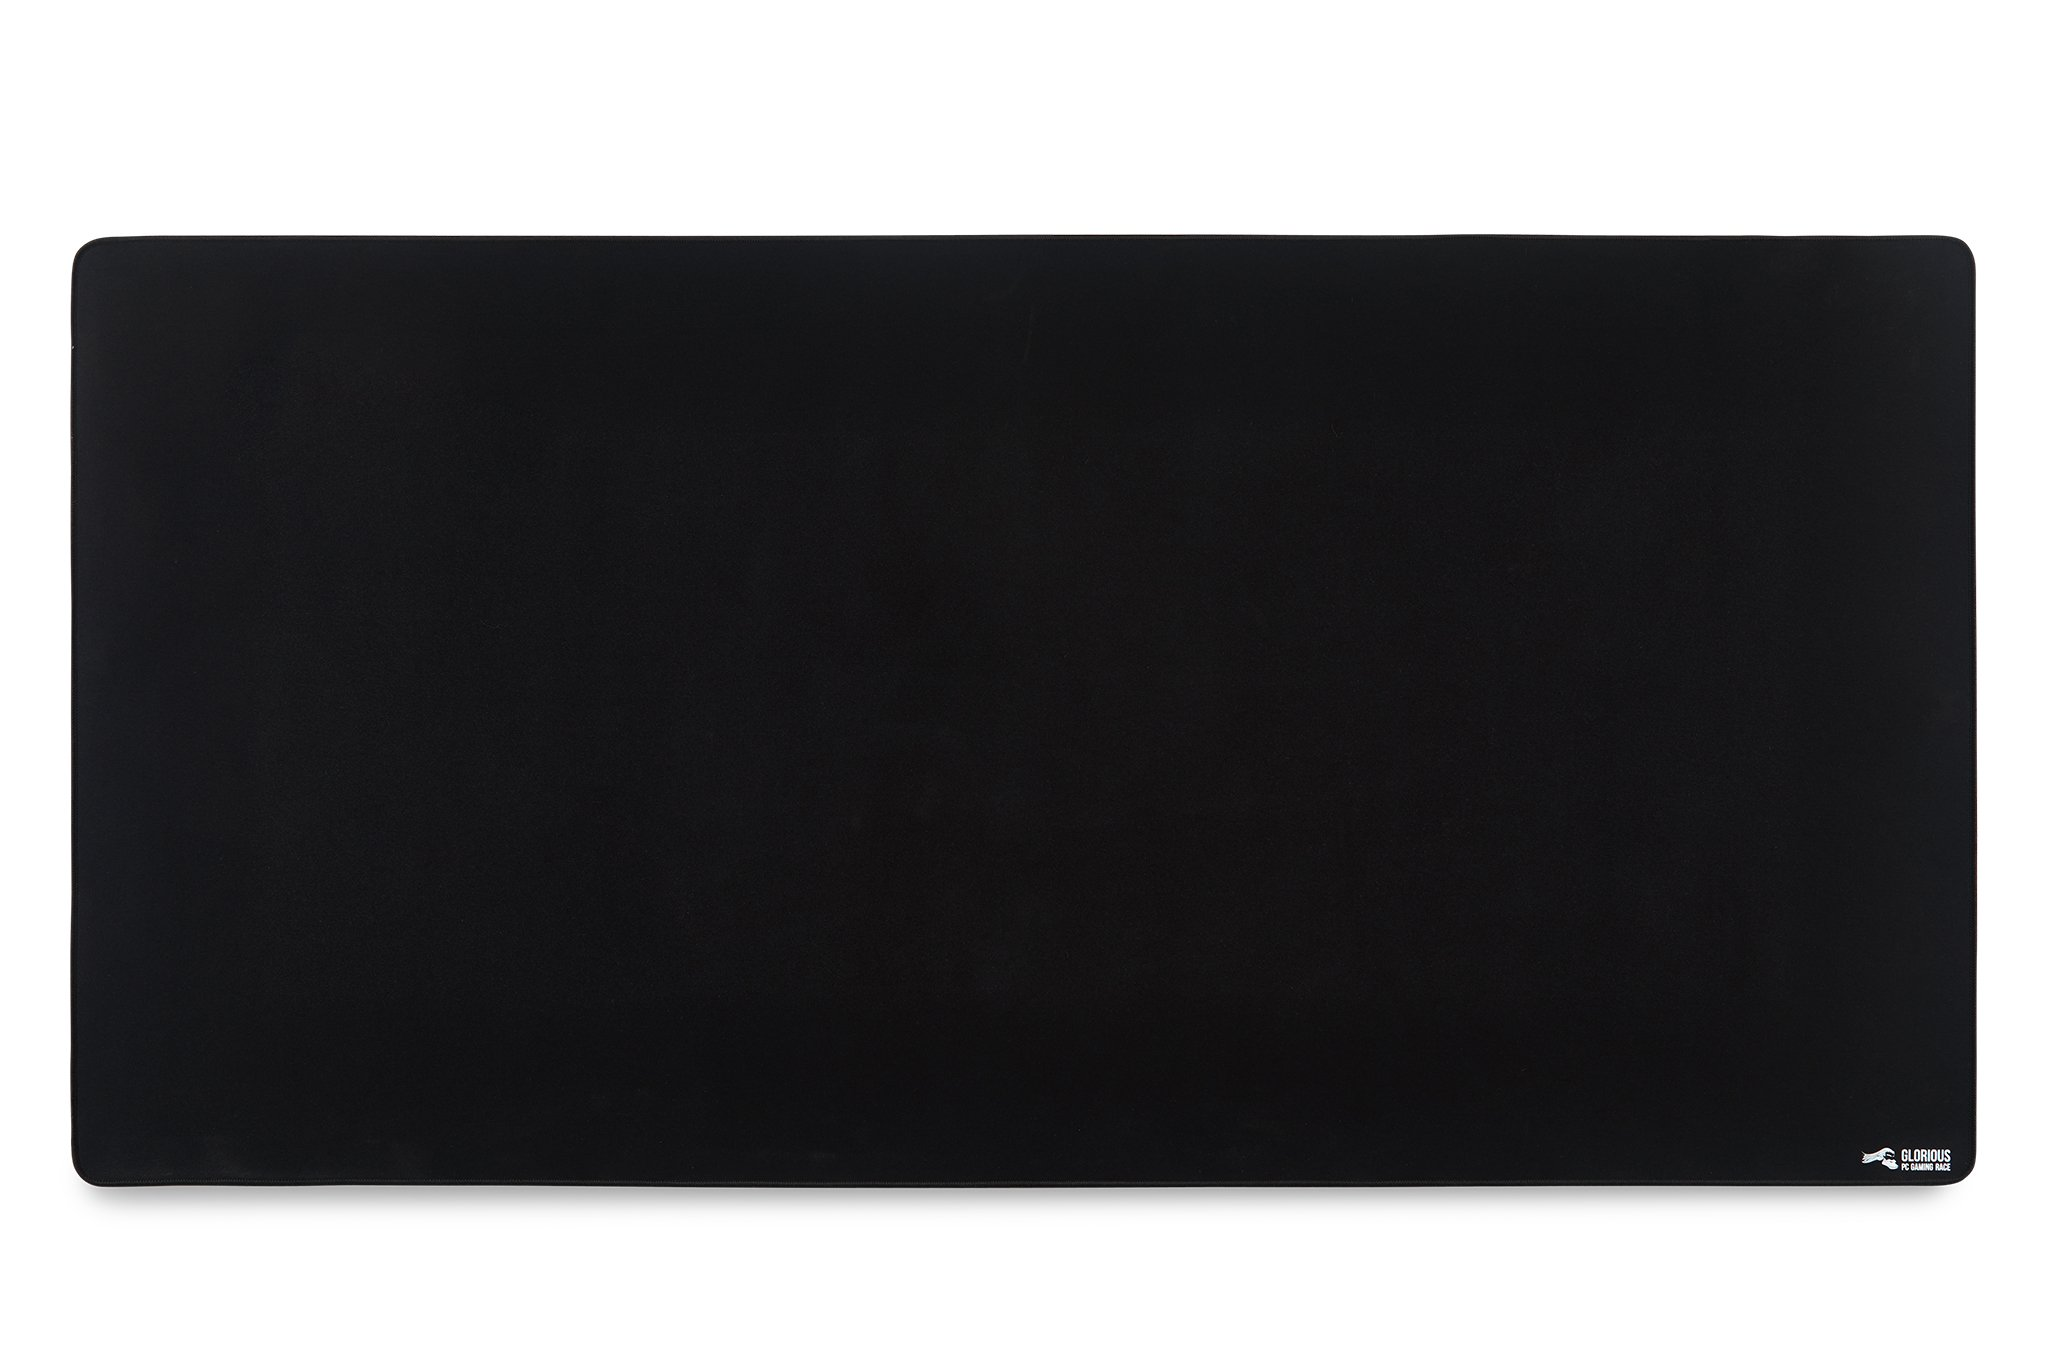 Glorious 3XL Extended Gaming Mouse Mat/Pad - Large, Wide (Long) Black Mousepad, Stitched Edges | 48''x24''x0.12'' (G-3XL)